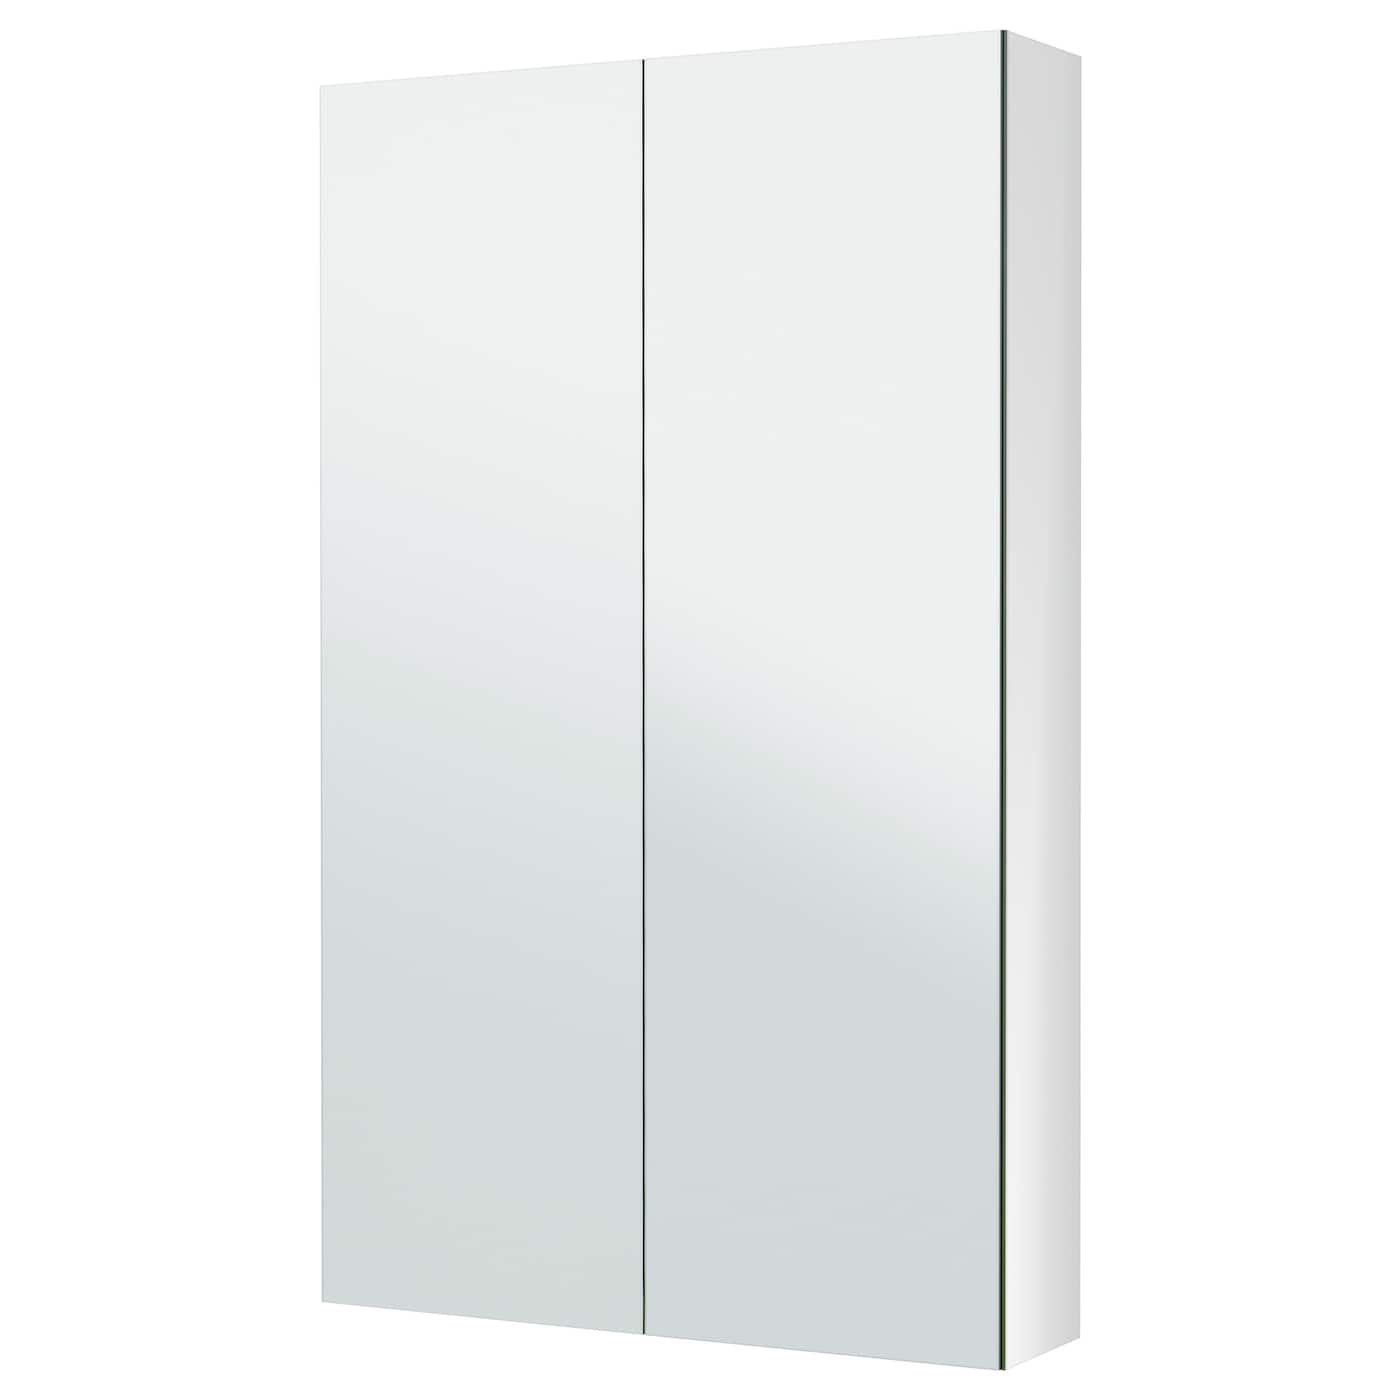 IKEA GODMORGON Mirror Cabinet With 2 Doors Both On The Outside And Inside